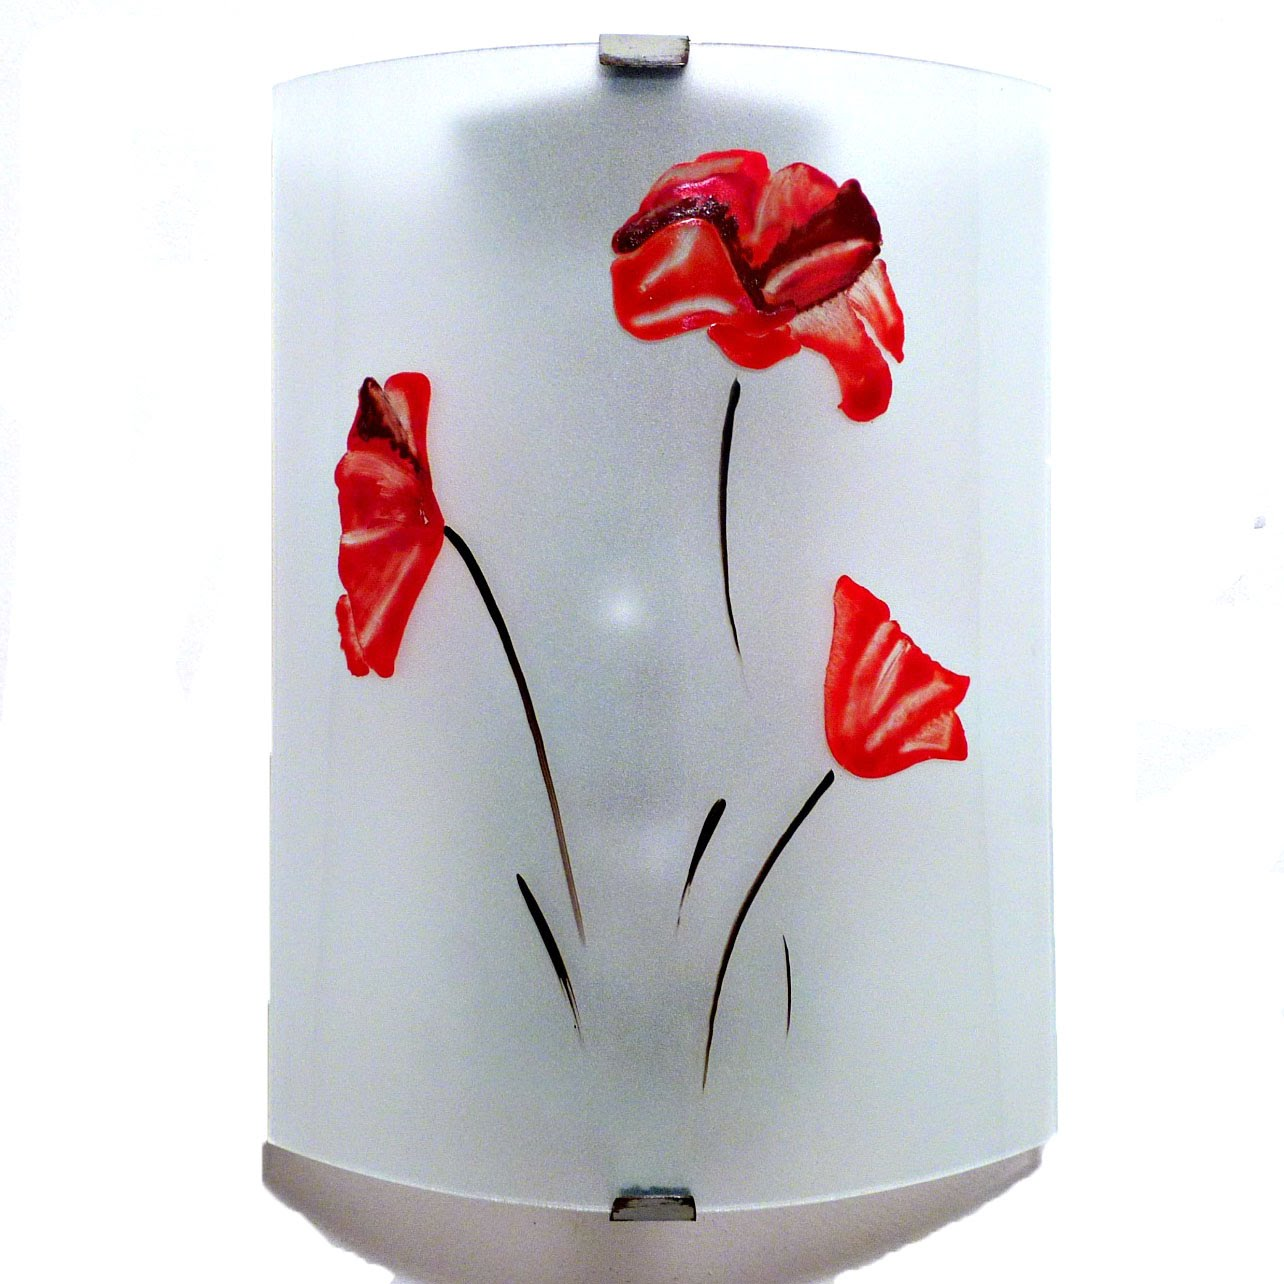 luminaire mural blanc motif trois coquelicots rouge. Black Bedroom Furniture Sets. Home Design Ideas